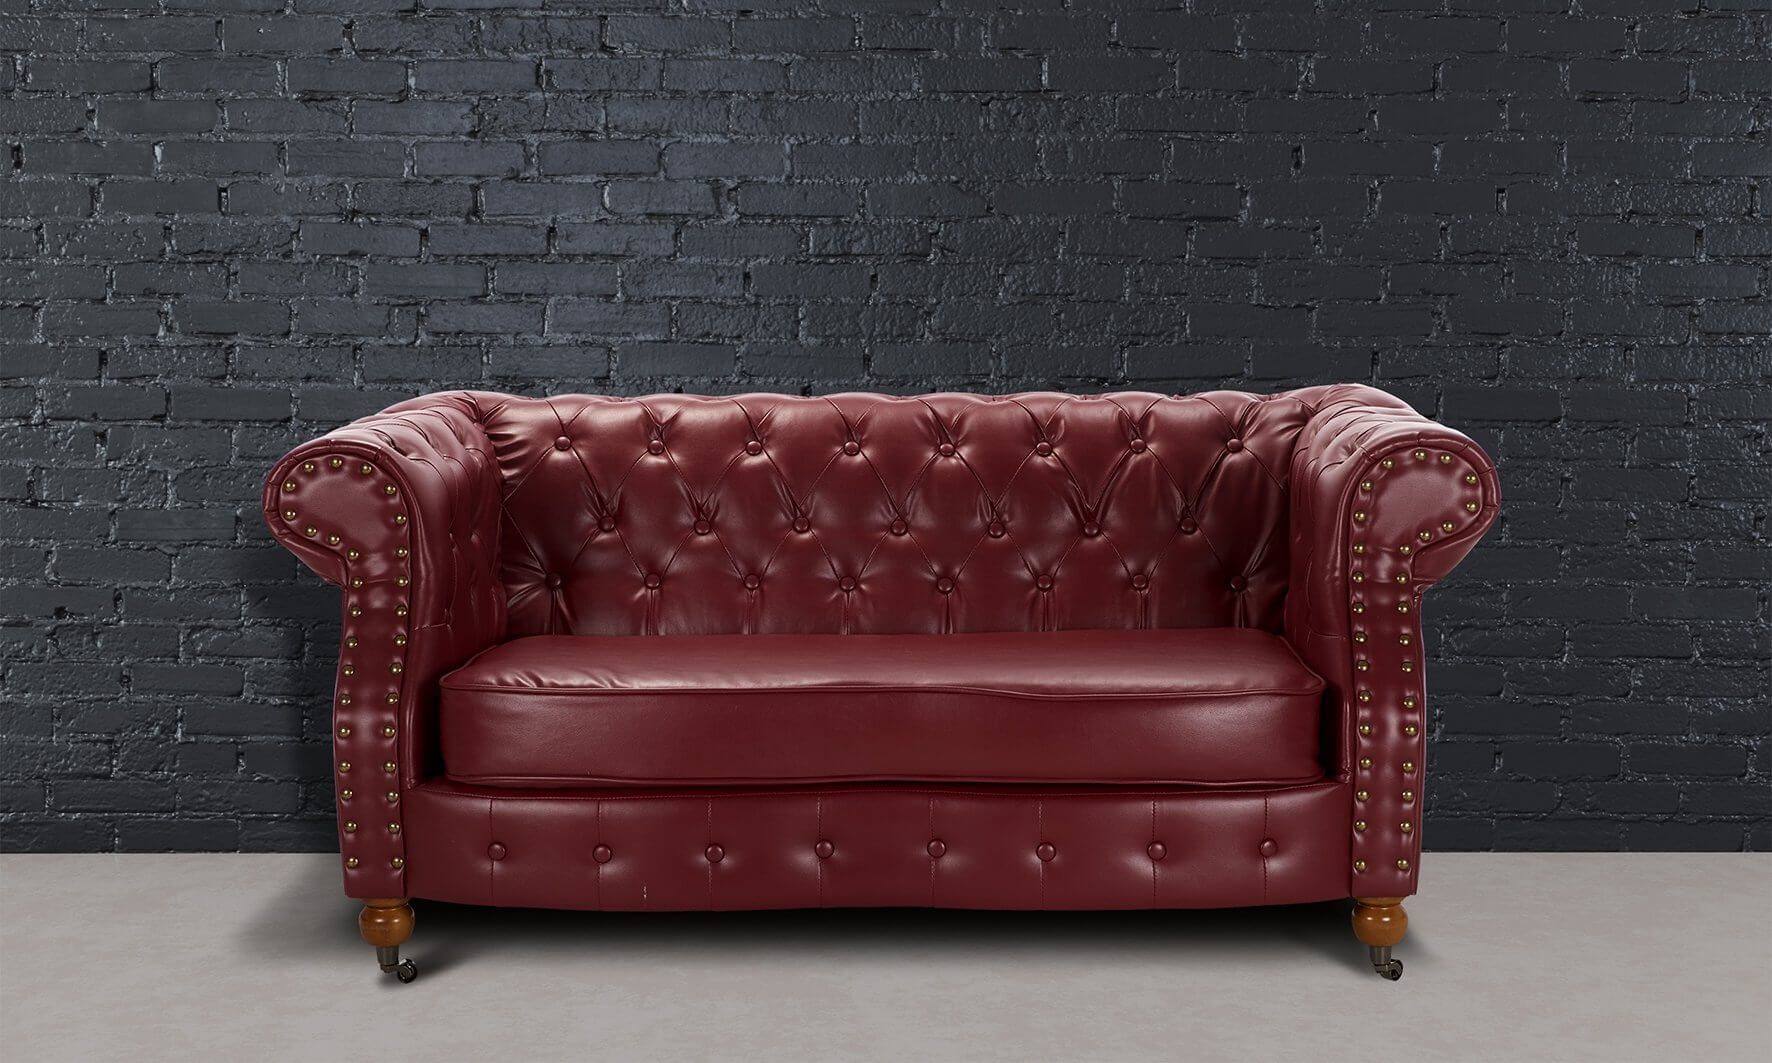 New Luxury Belgravia Chesterfield 2 Seater Bonded Leather